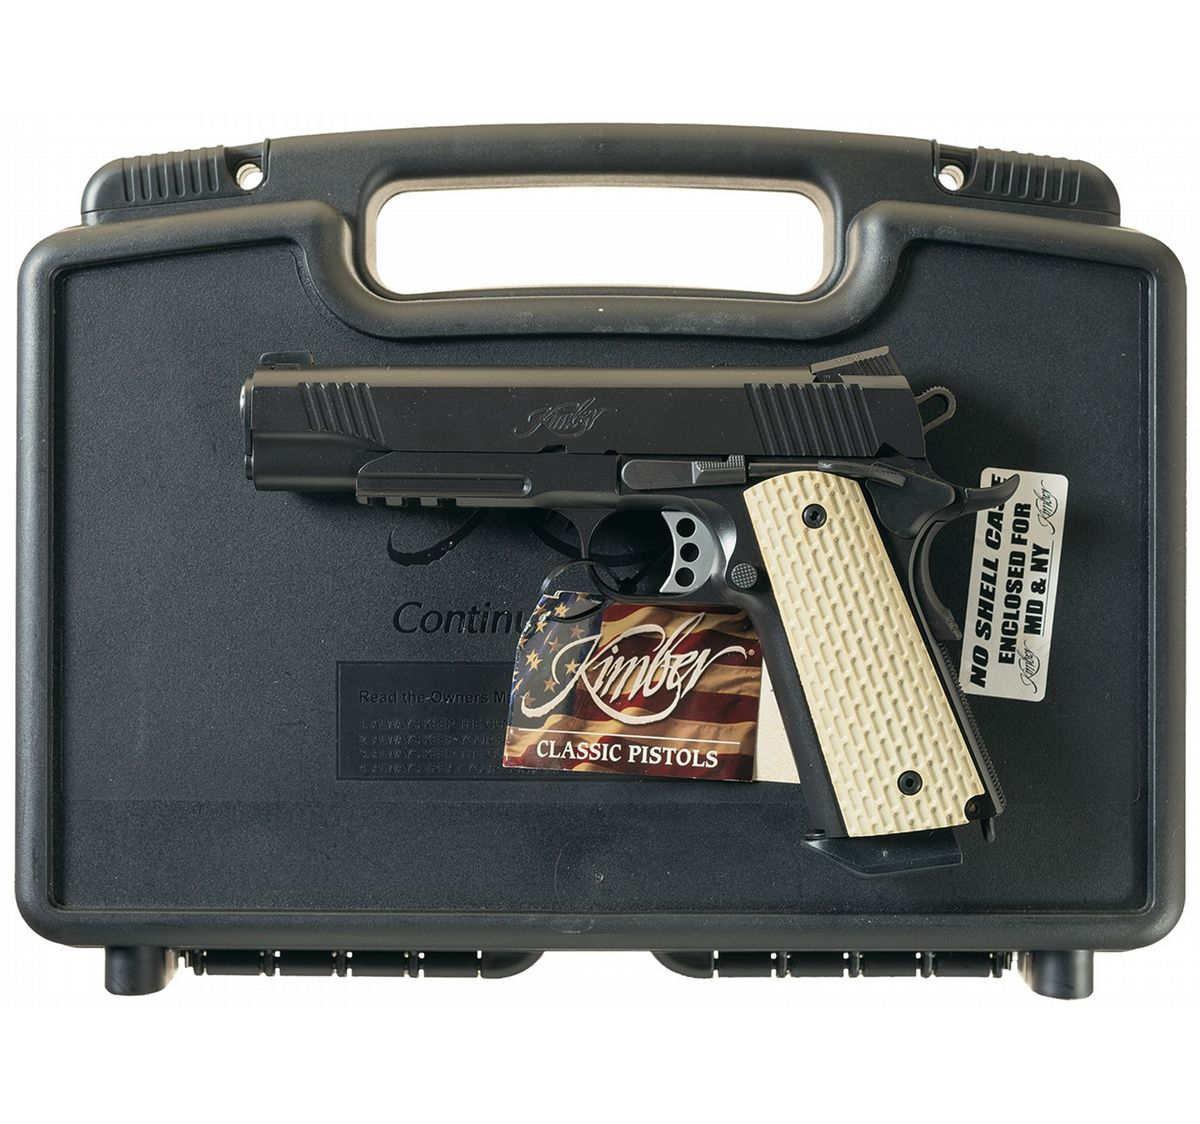 Kimber Warrior 1911 Semi-Automatic Pistol with Case